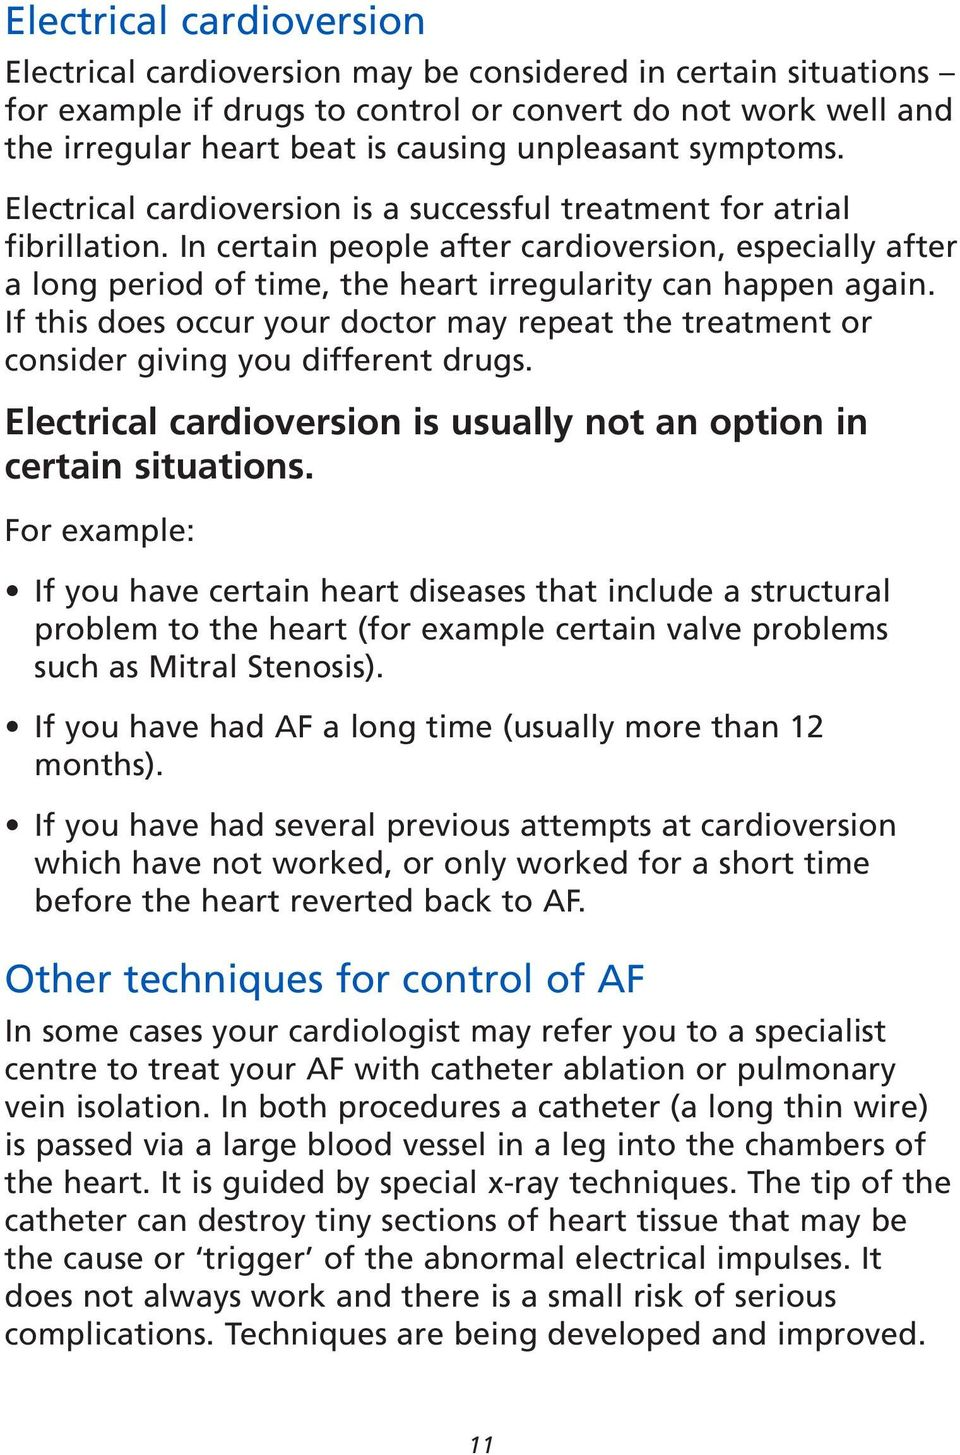 In certain people after cardioversion, especially after a long period of time, the heart irregularity can happen again.